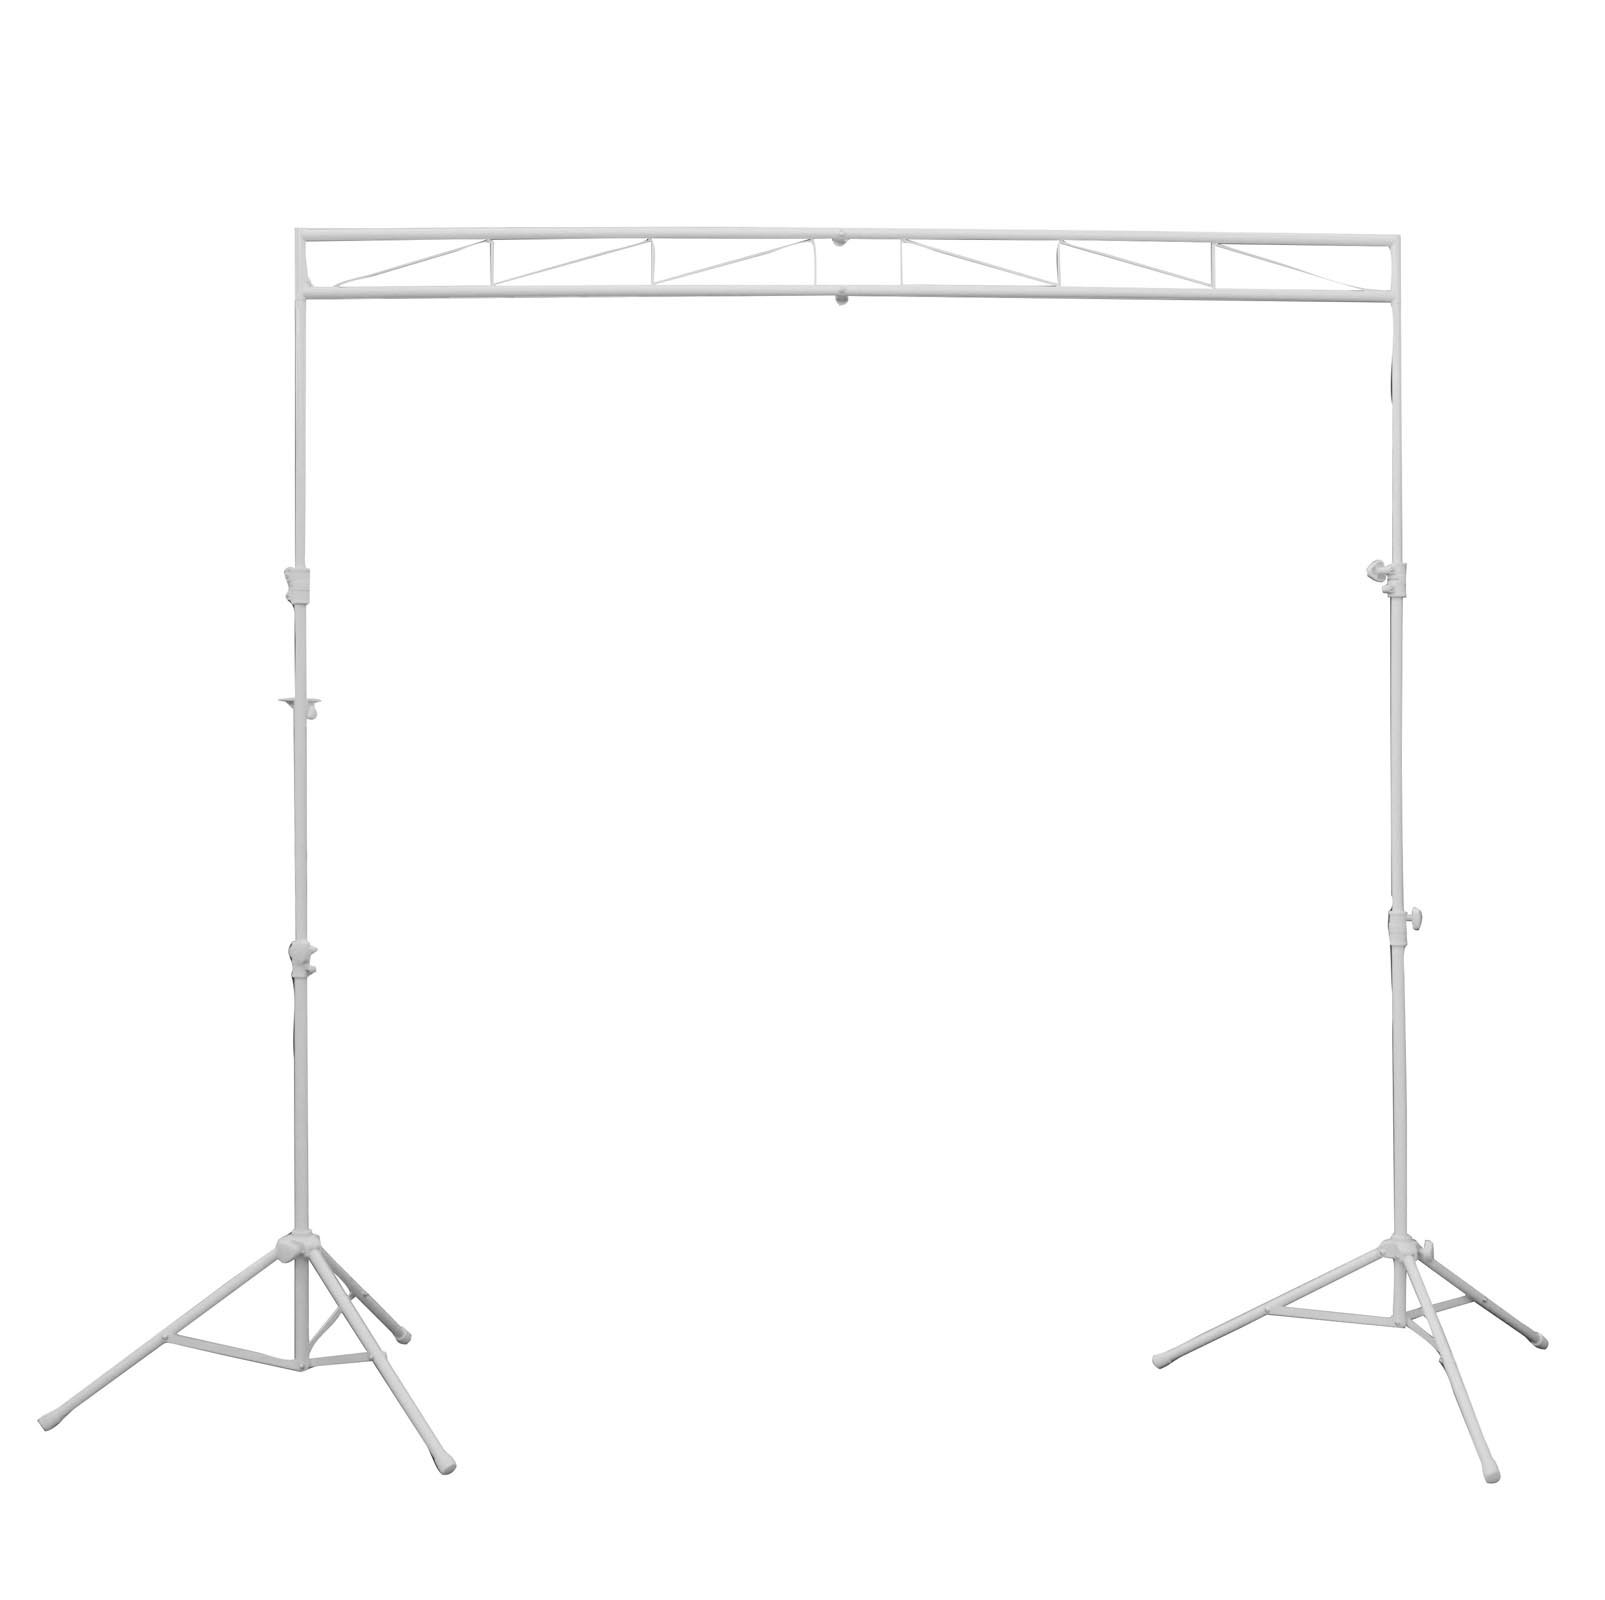 Odyssey LTMTS8WHT MTS-8 Compact Lighting Mobile Truss System